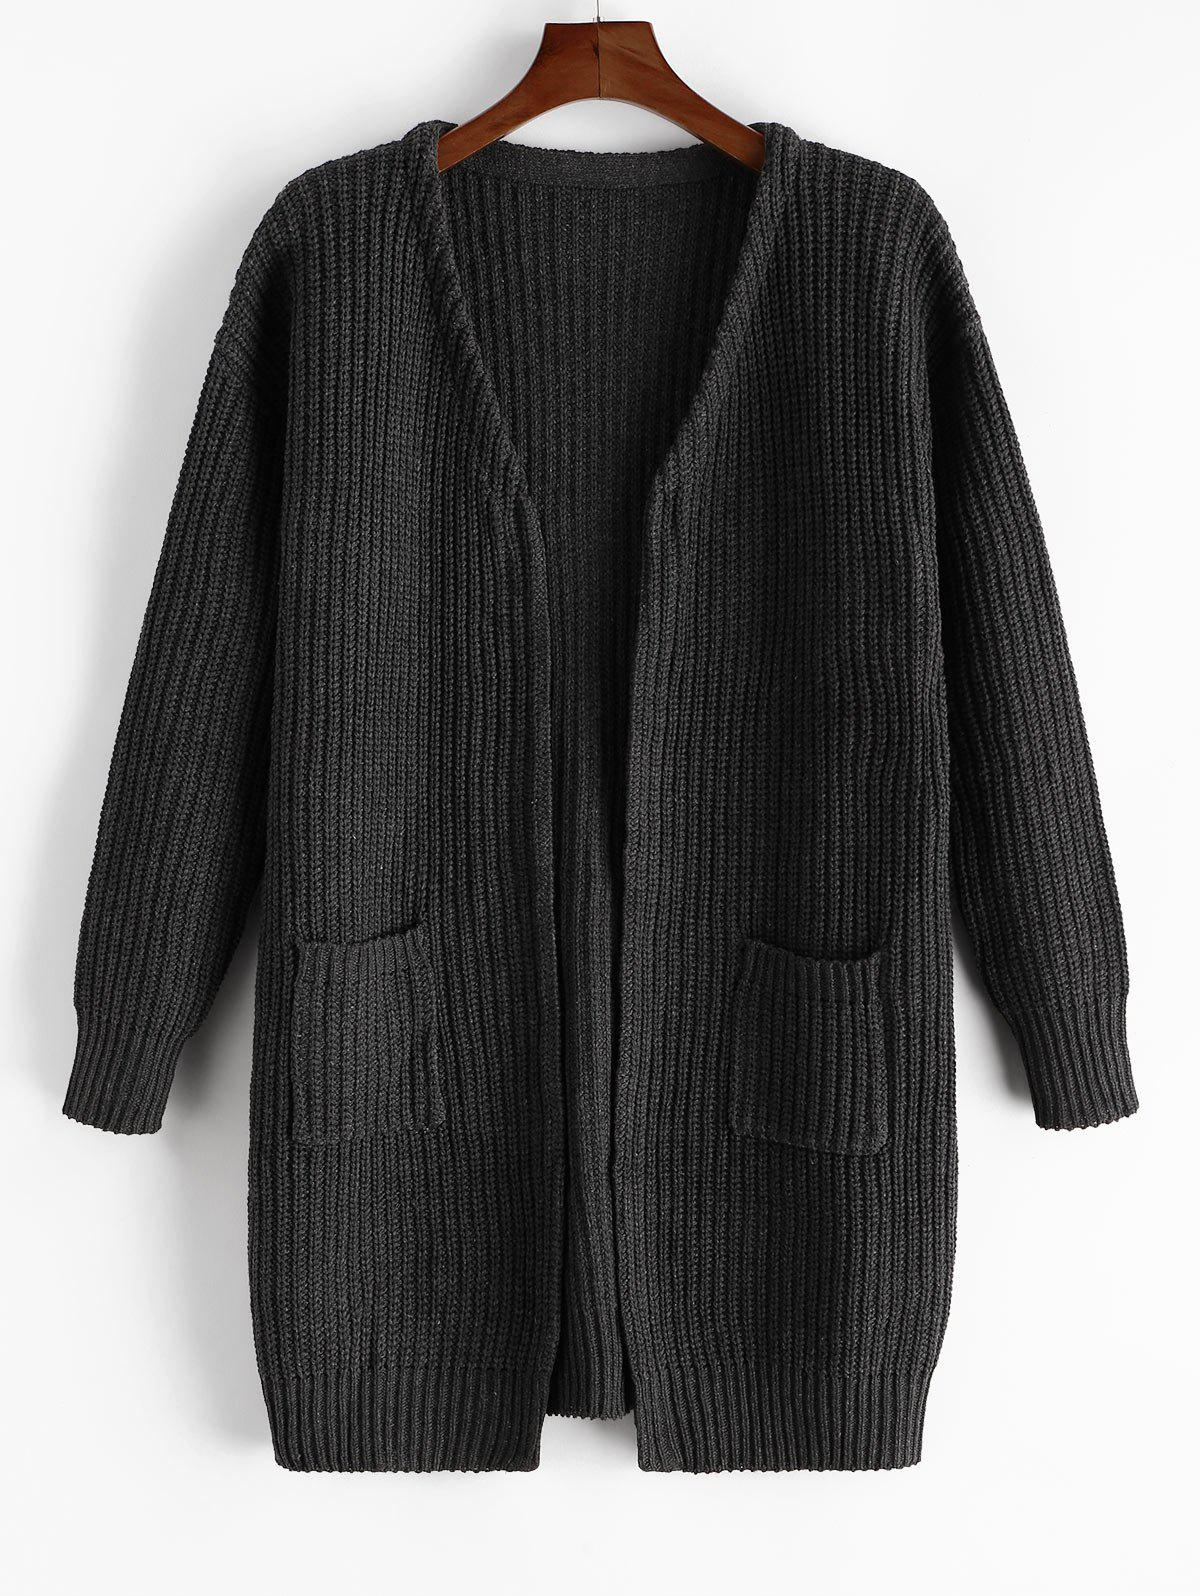 Open Front Pockets Rib Knit Cardigan - CARBON FIBER BLACK M